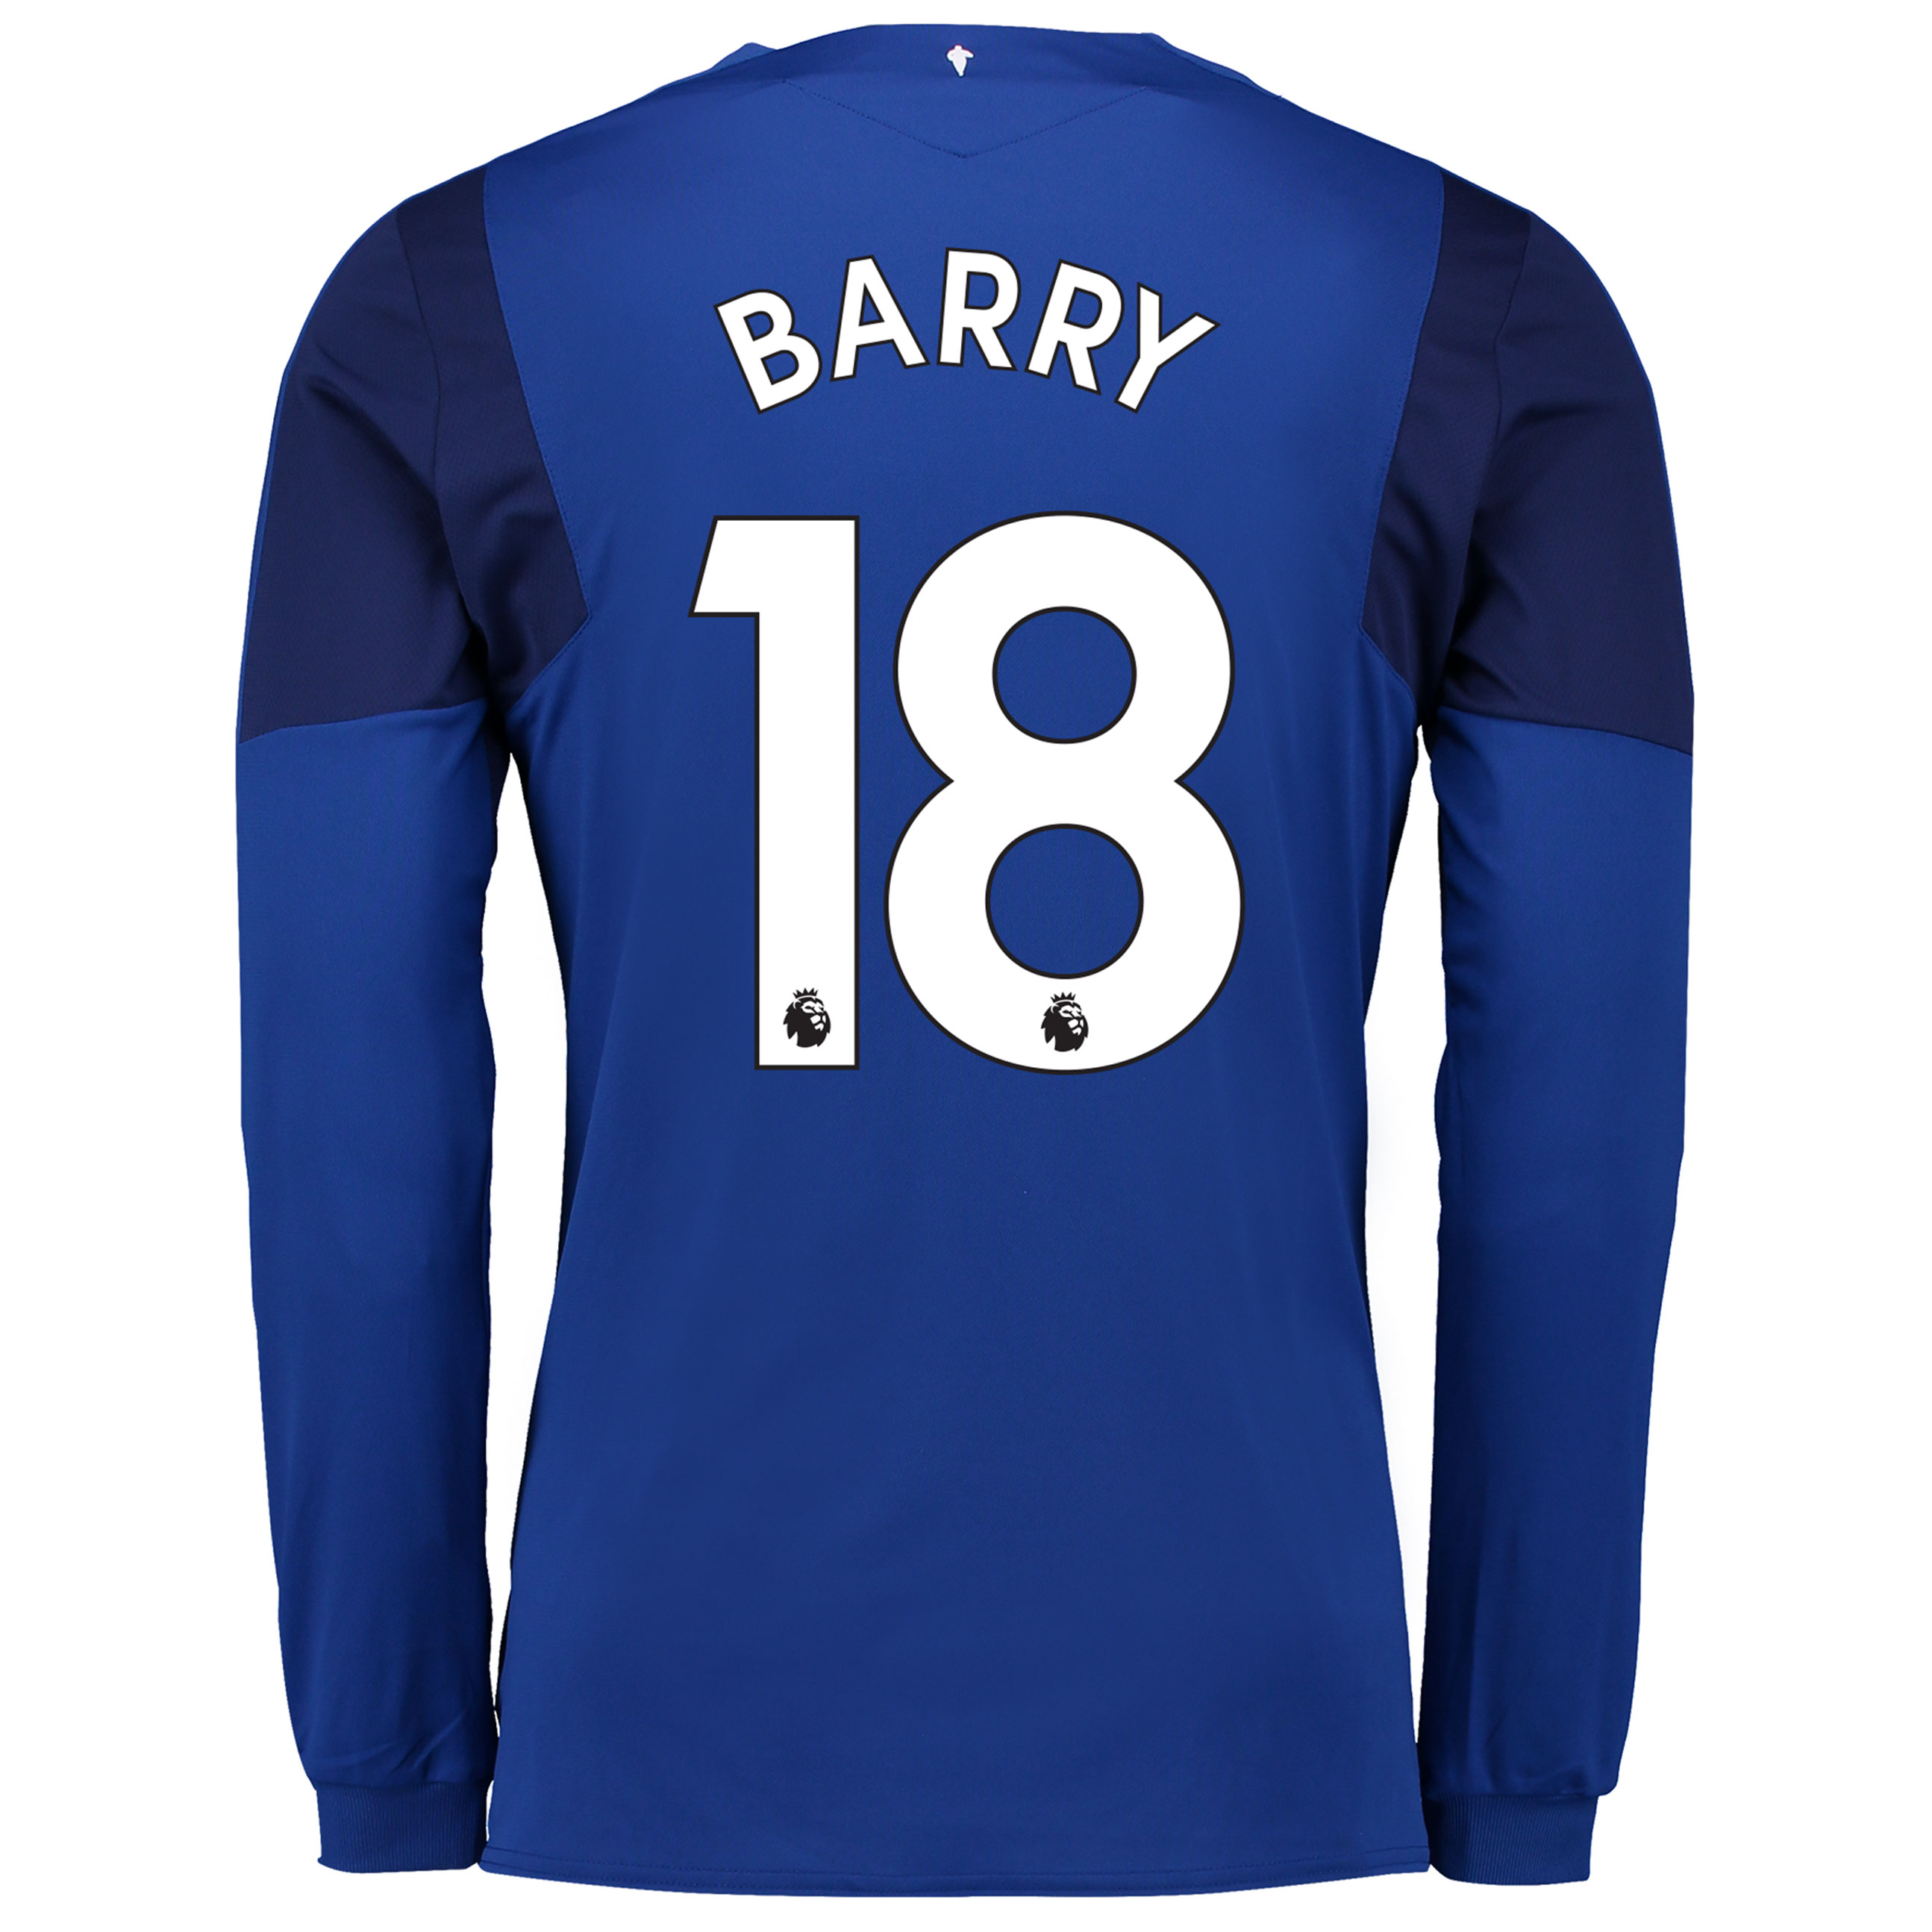 Everton Home Shirt 2017/18 - Long Sleeved with Barry 18 printing